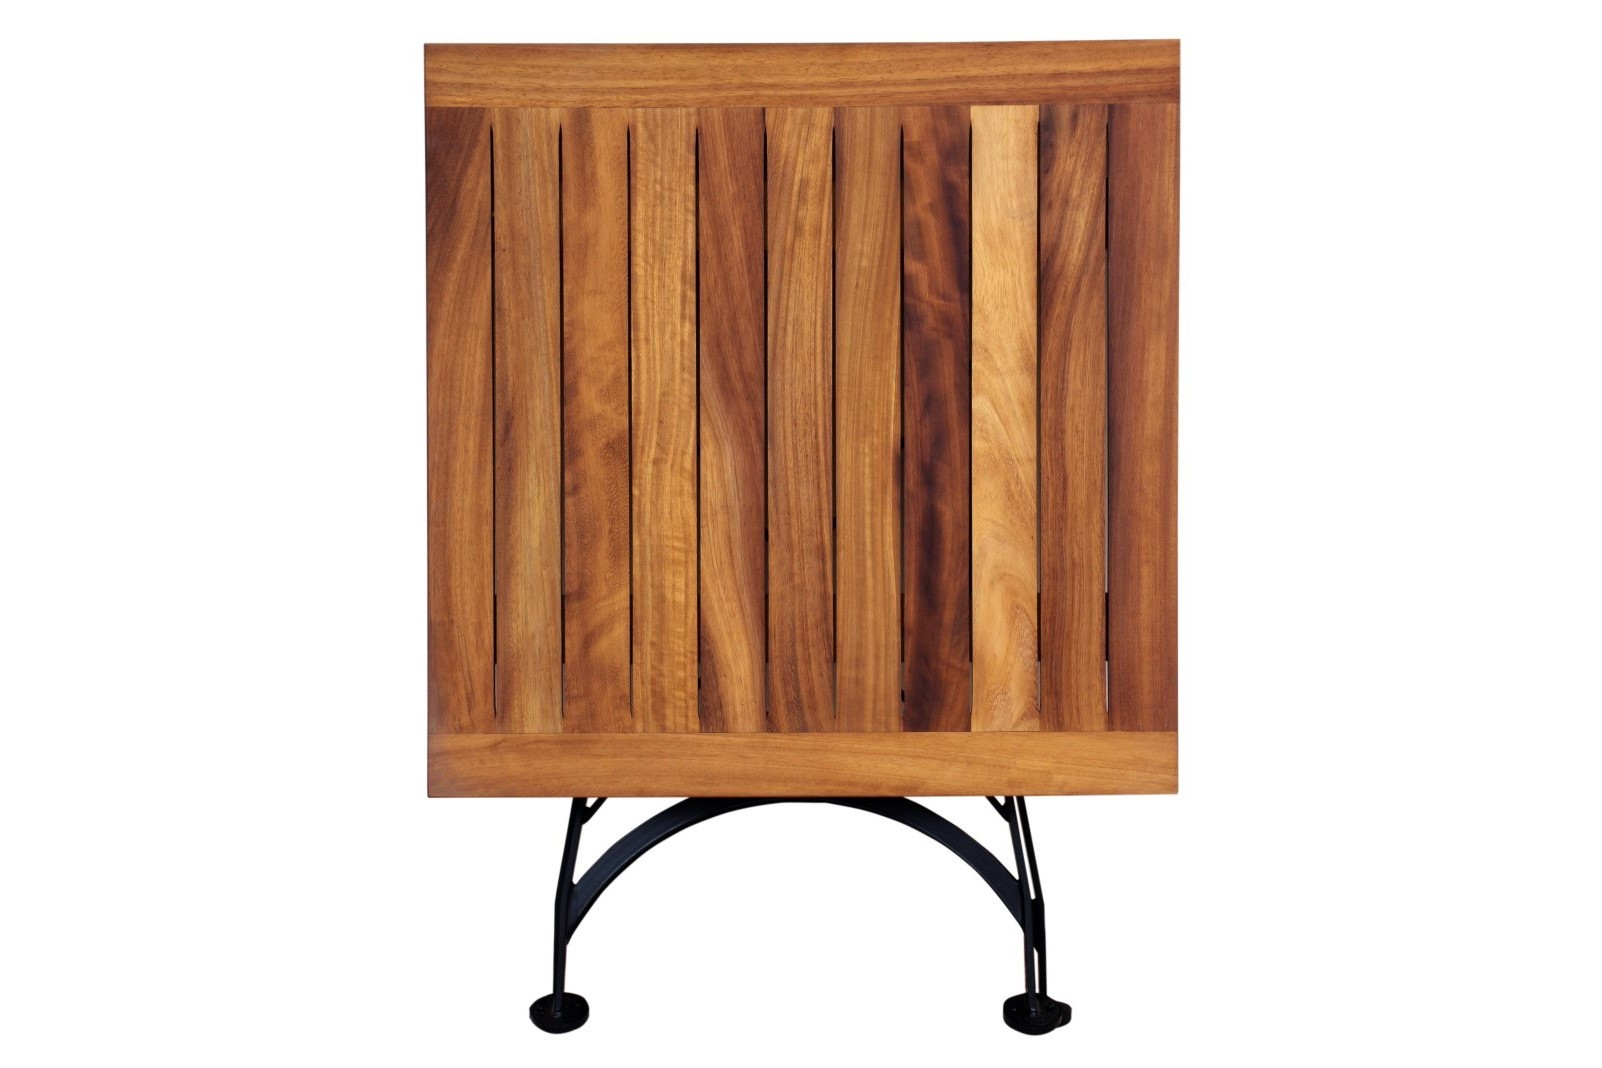 4114T-BK African Teak dining table folded